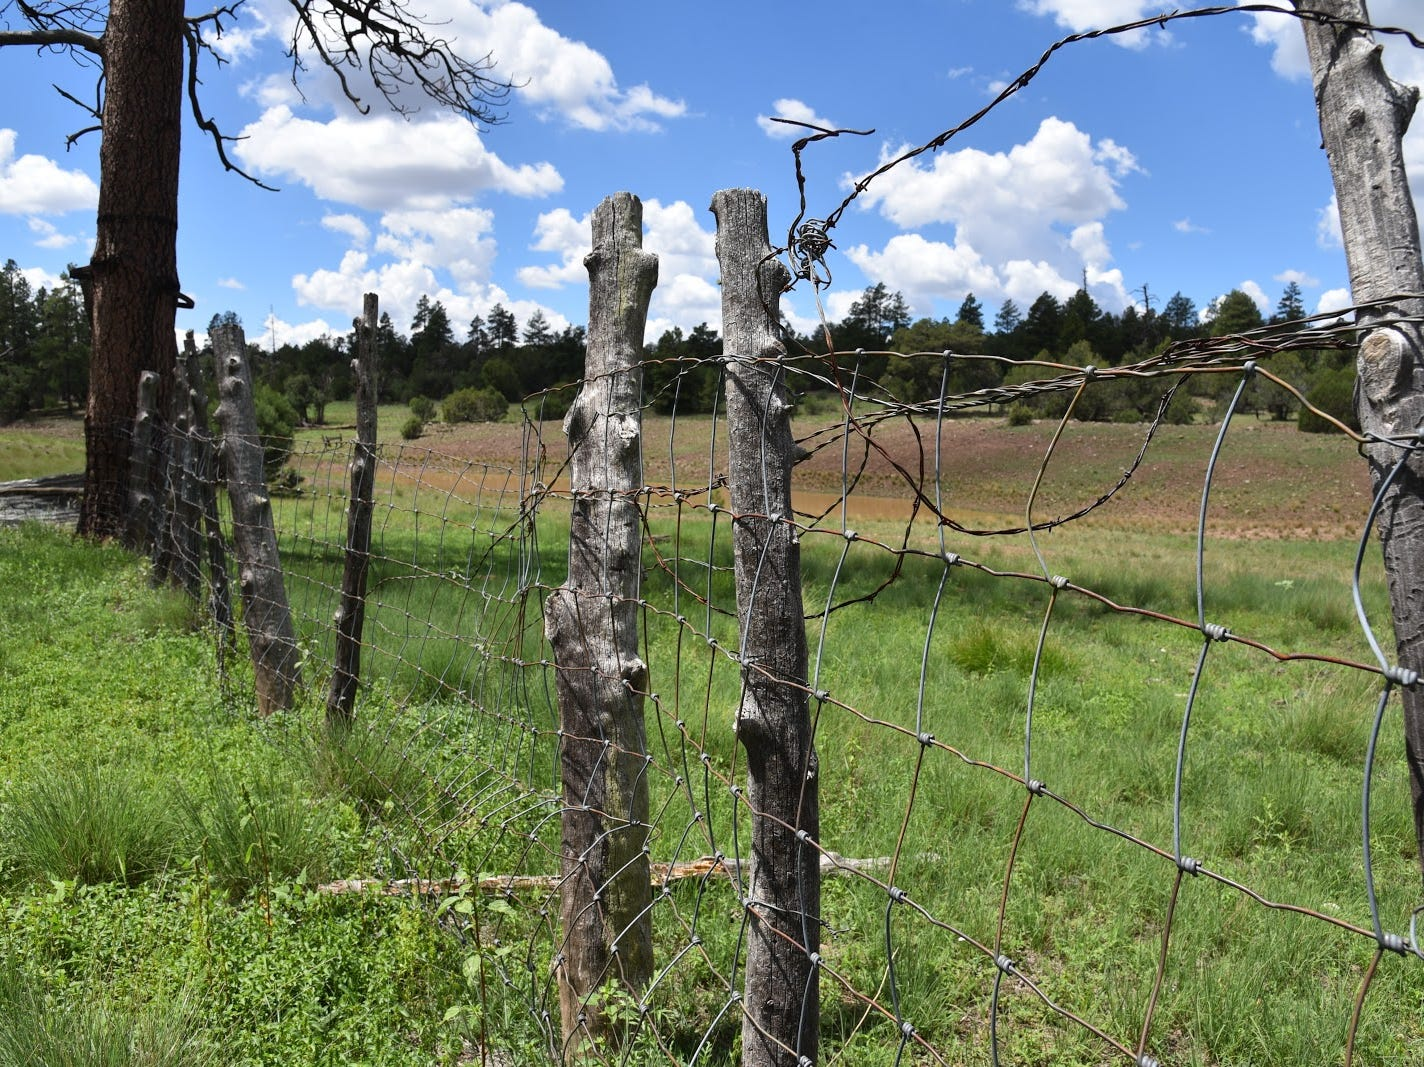 Barbed wire fences at Cow Tank.